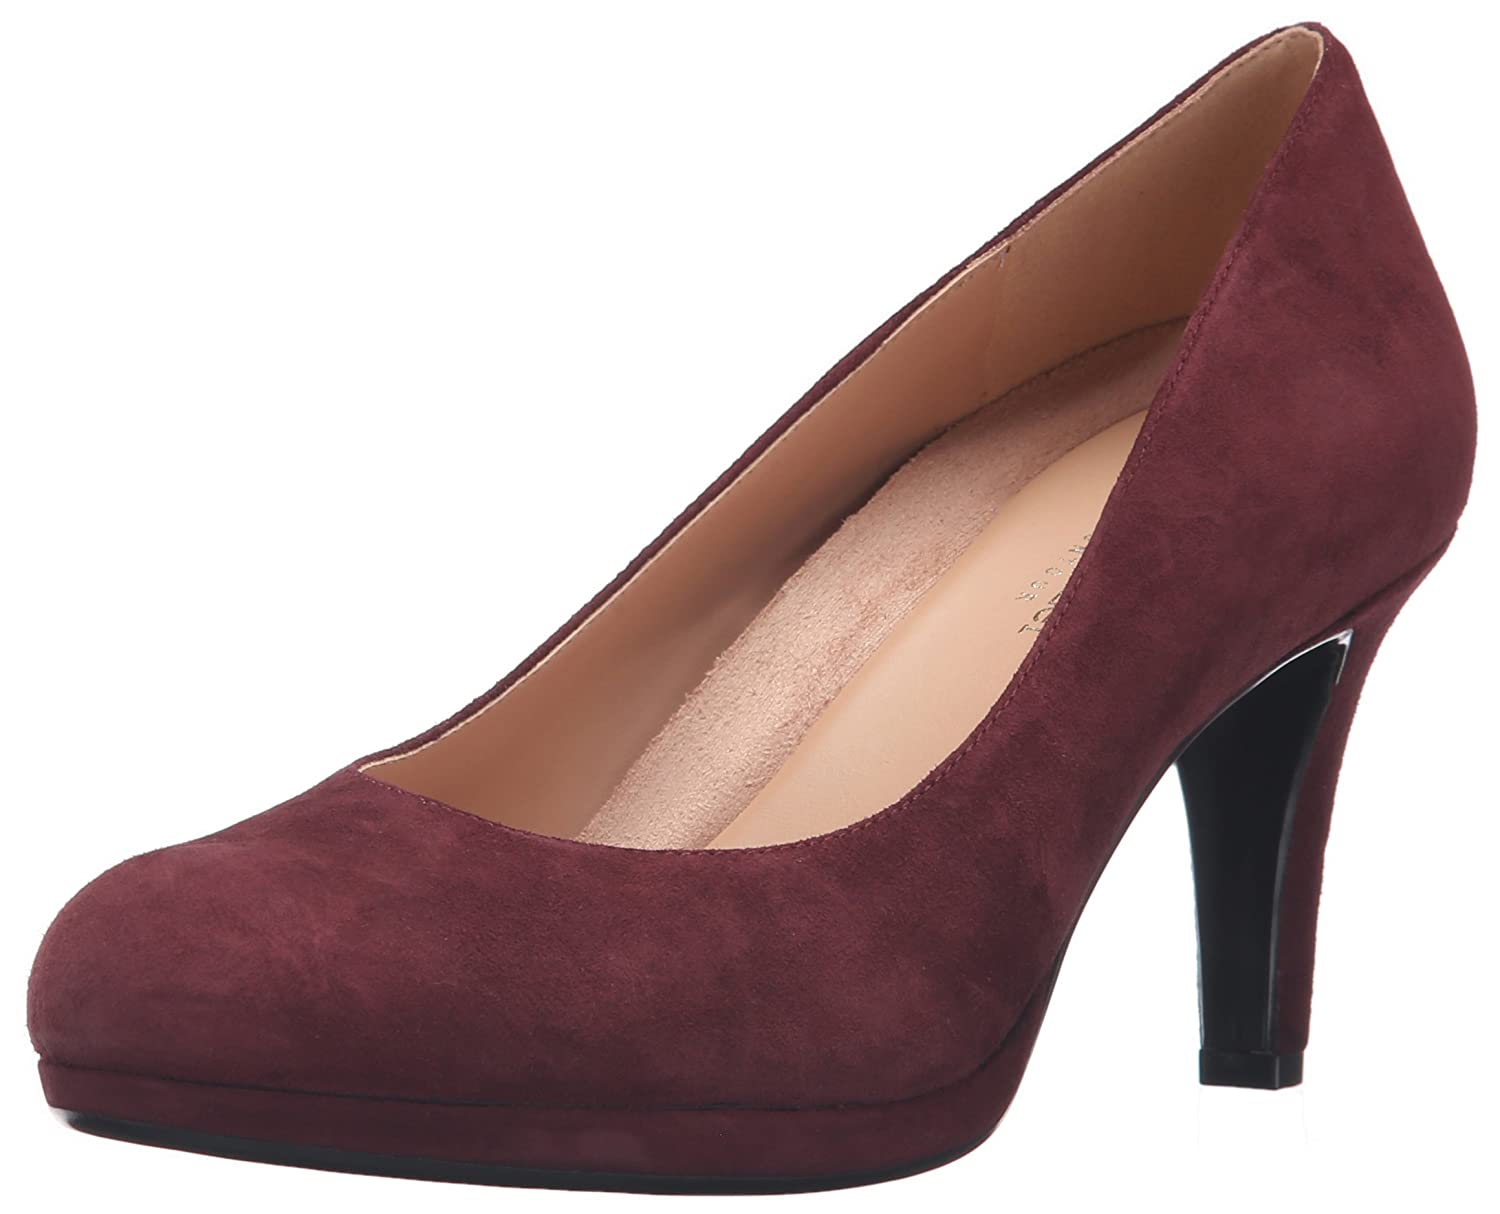 Naturalizer Women's Michelle Dress Pump B019XHSPBQ 8.5 B(M) US|Bordo